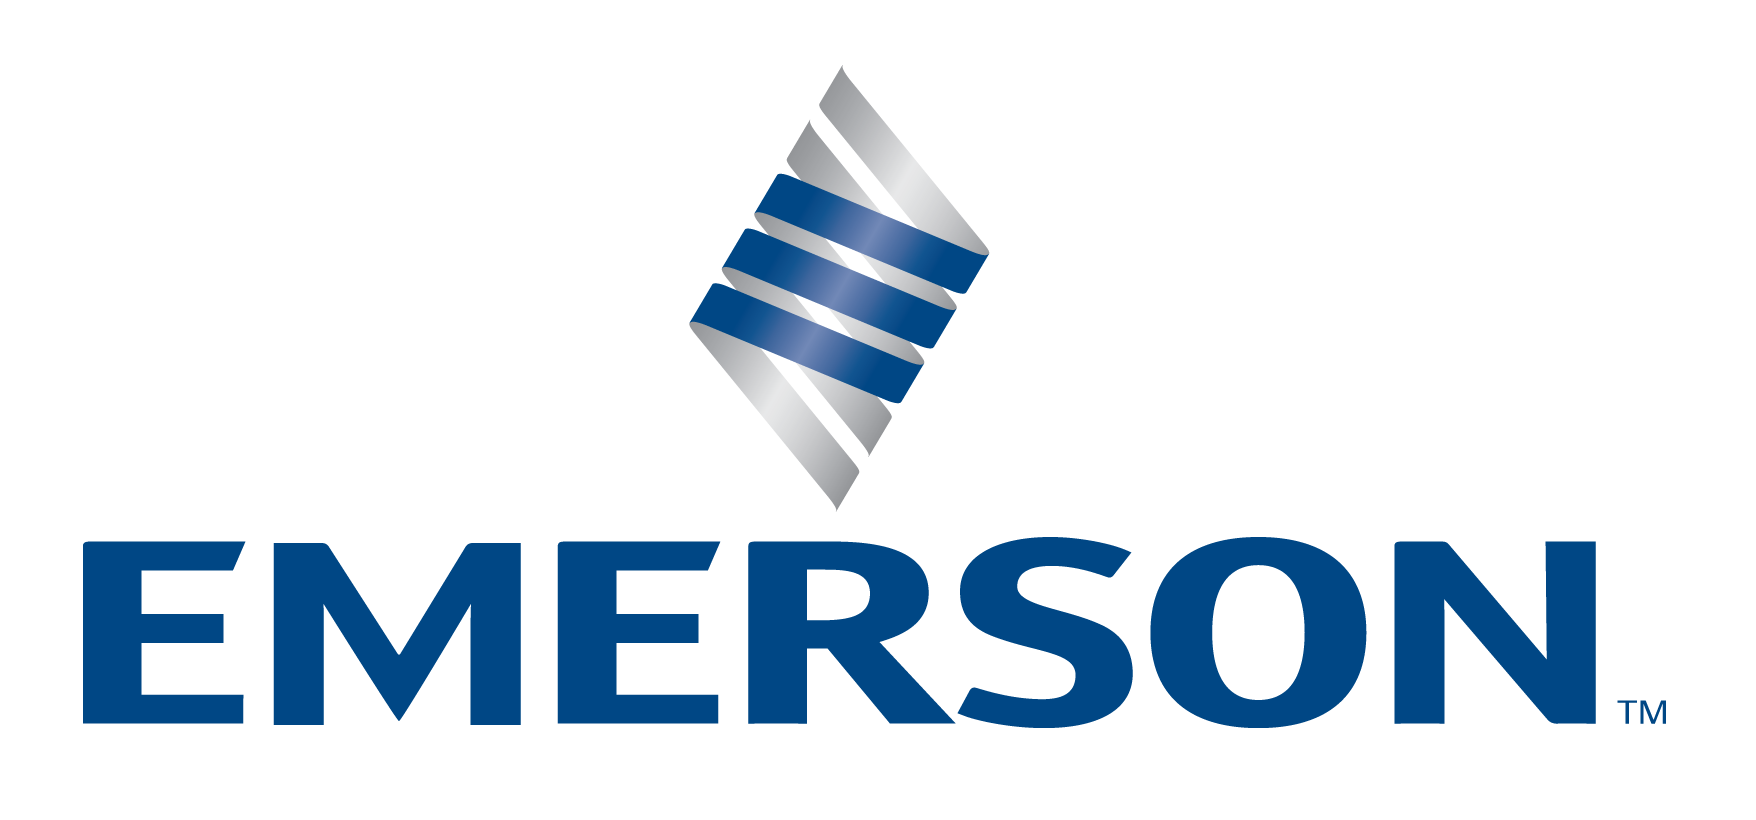 emerson-electric-logo-png-transparent.png